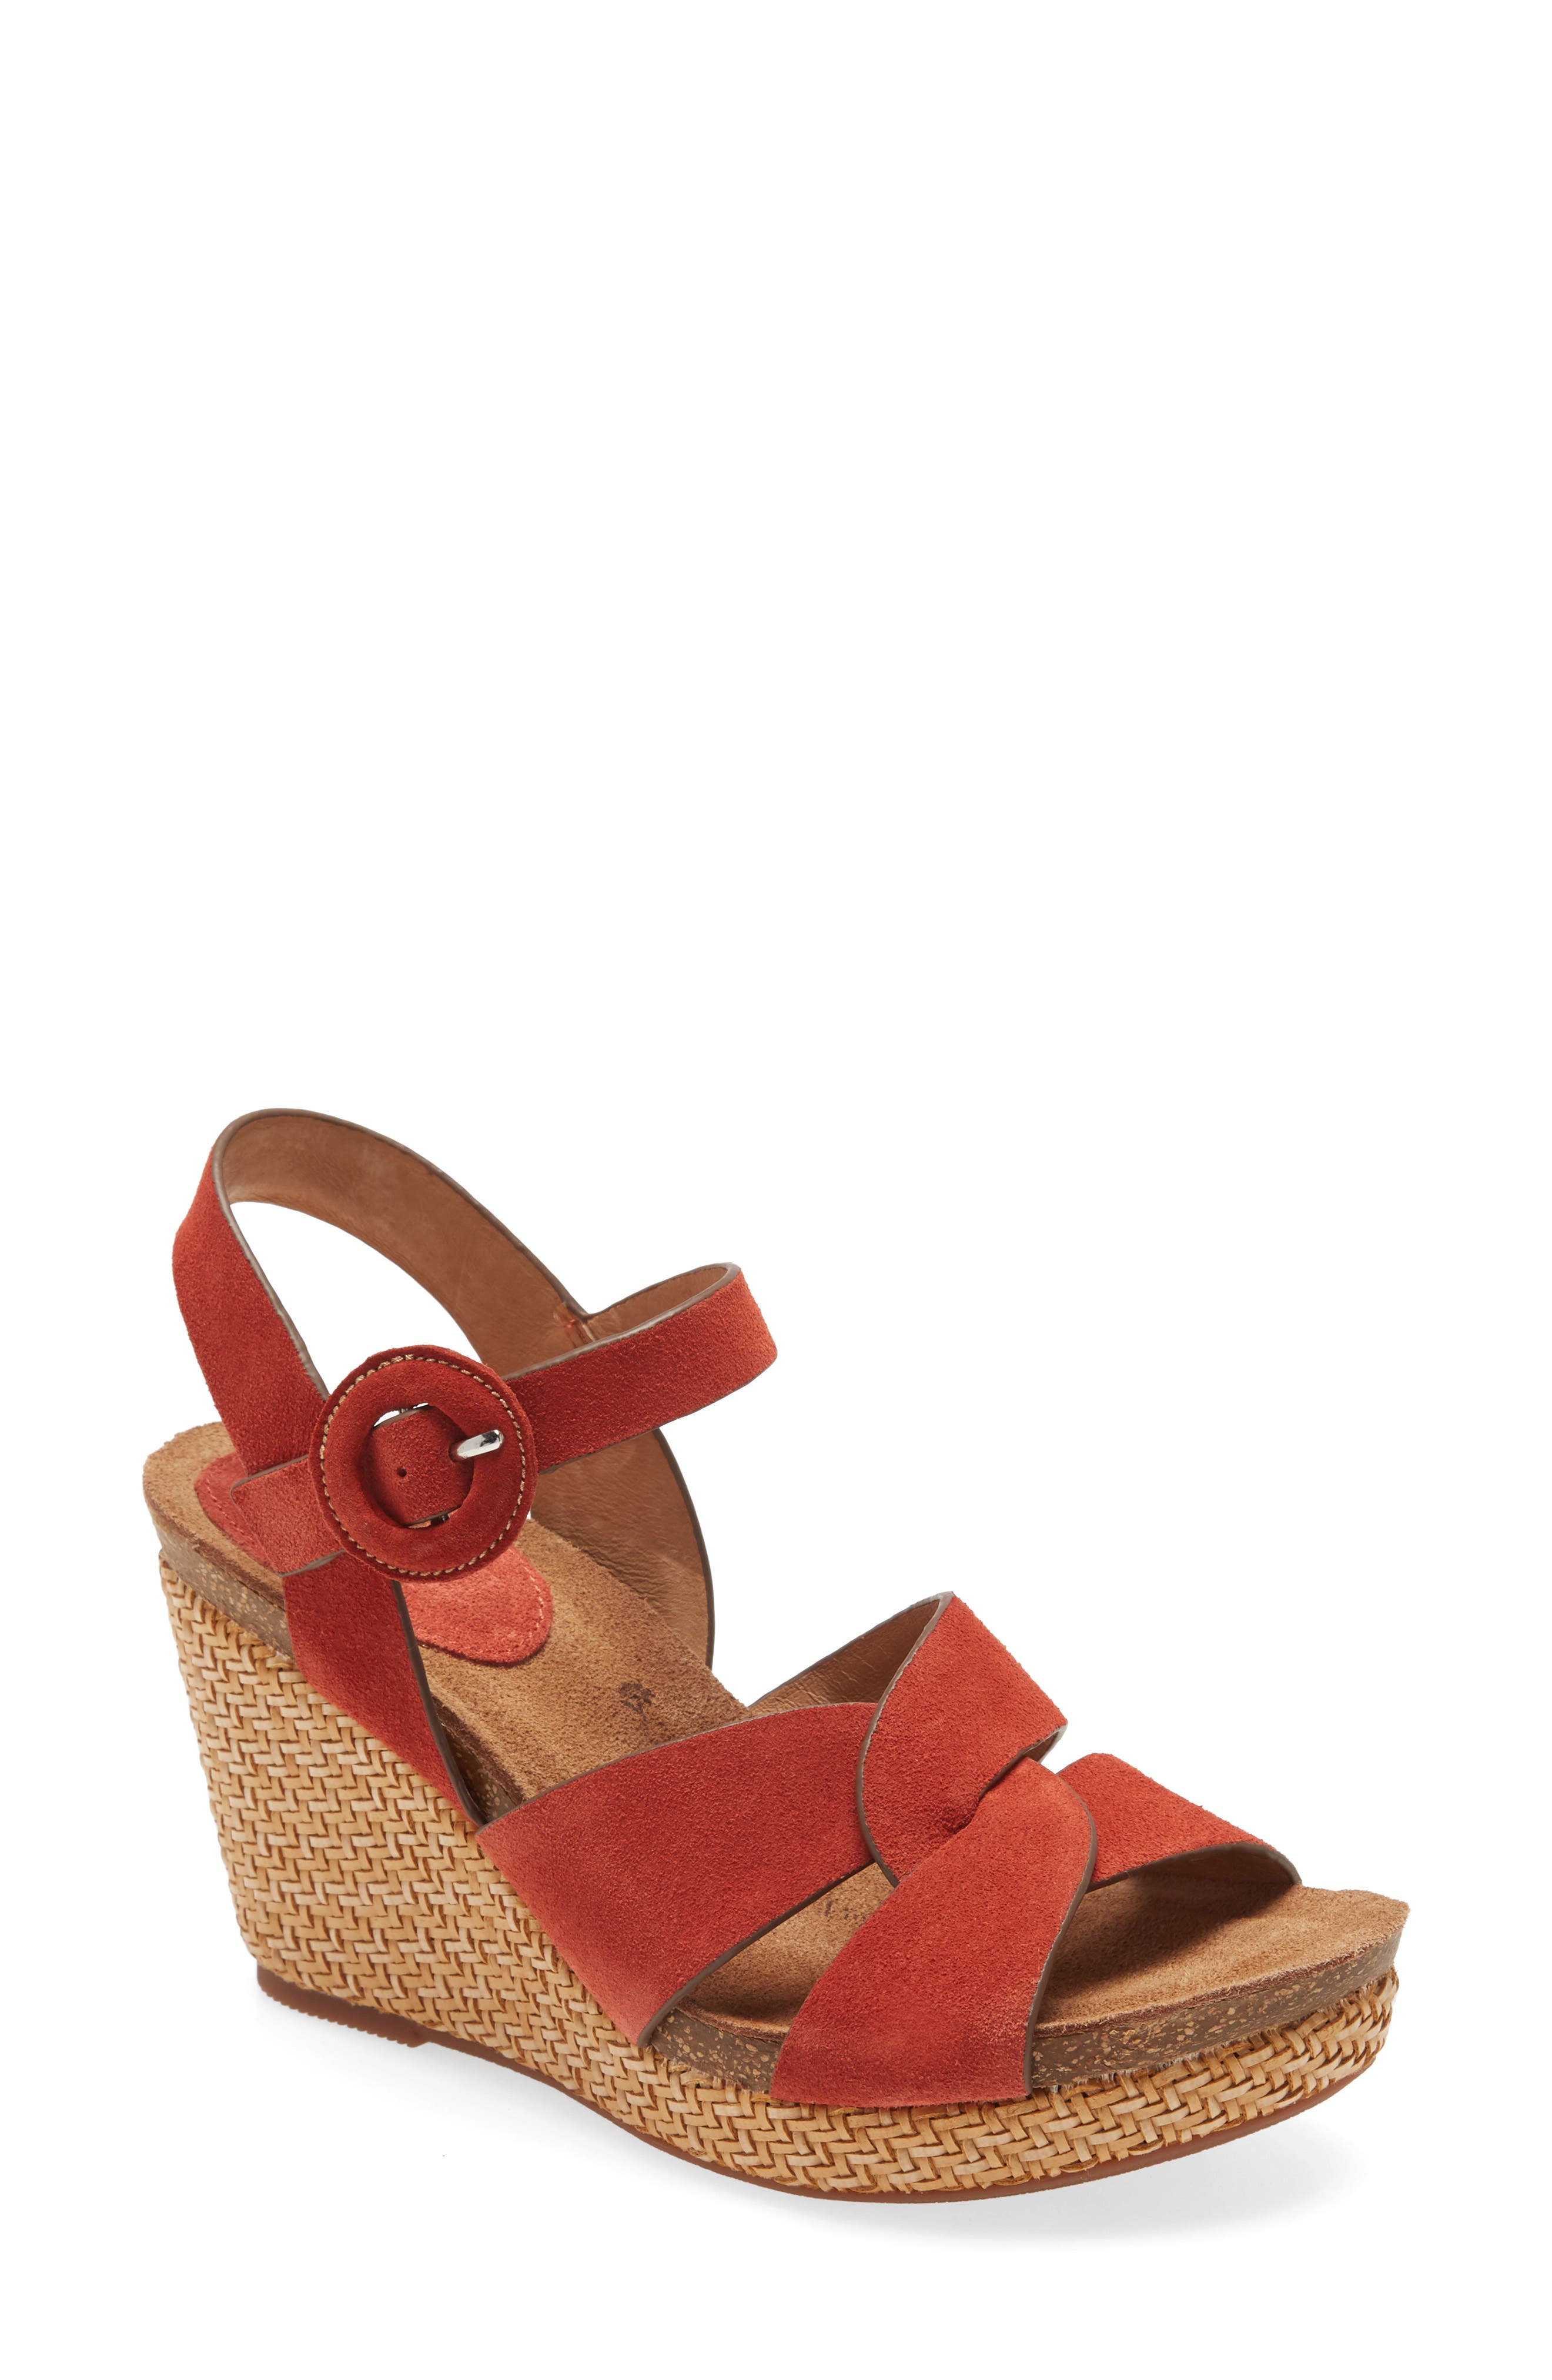 Smartly interlocking straps cinch the sophisticated charm of a textural wedge sandal anchored by a slender ankle strap. Style Name: Sofft Casidy Wedge Sandal (Women). Style Number: 5976747 1. Available in stores.